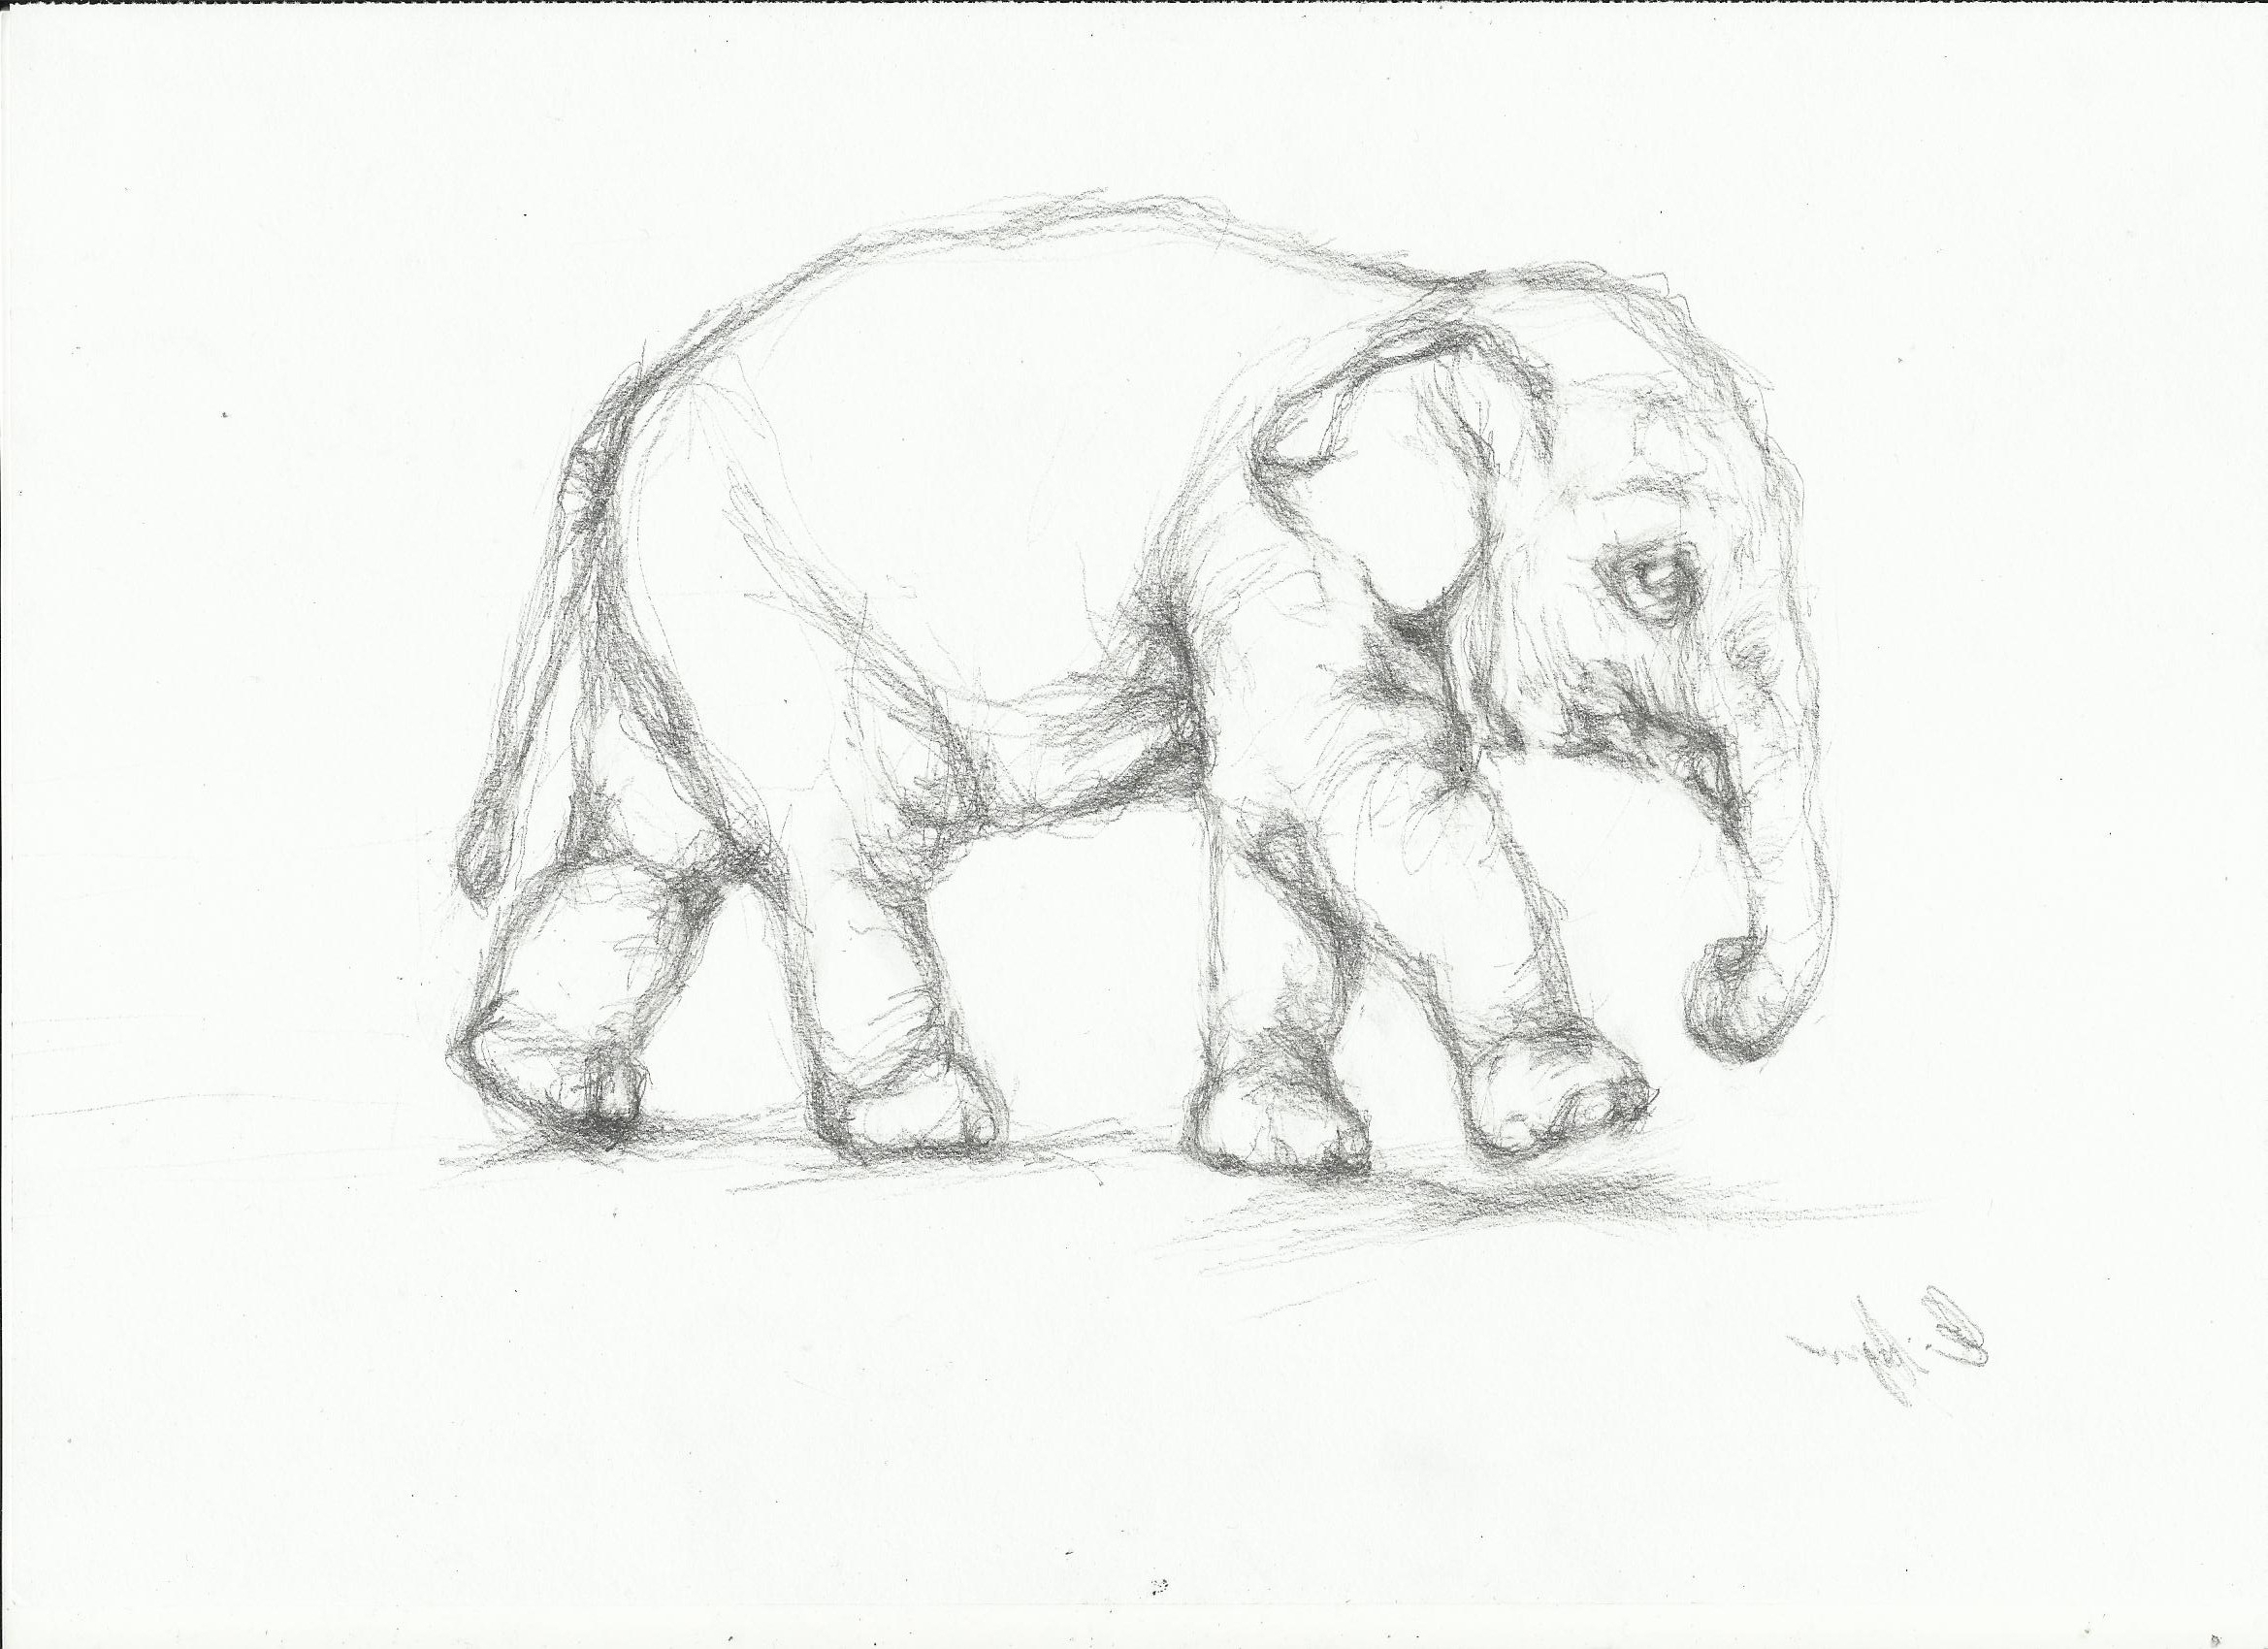 2338x1700 Gallery Free Pencil Sketches Of Animals,